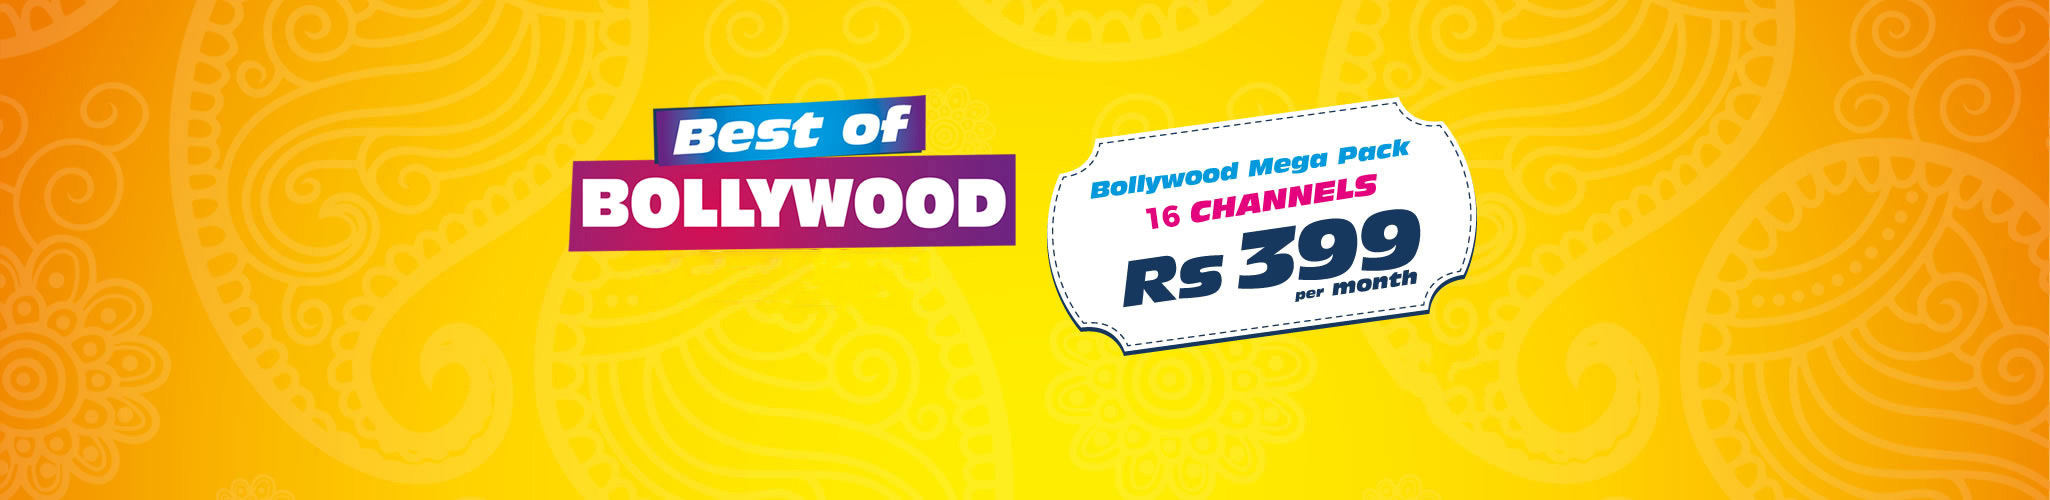 my t home - Bollywood Mega Pack